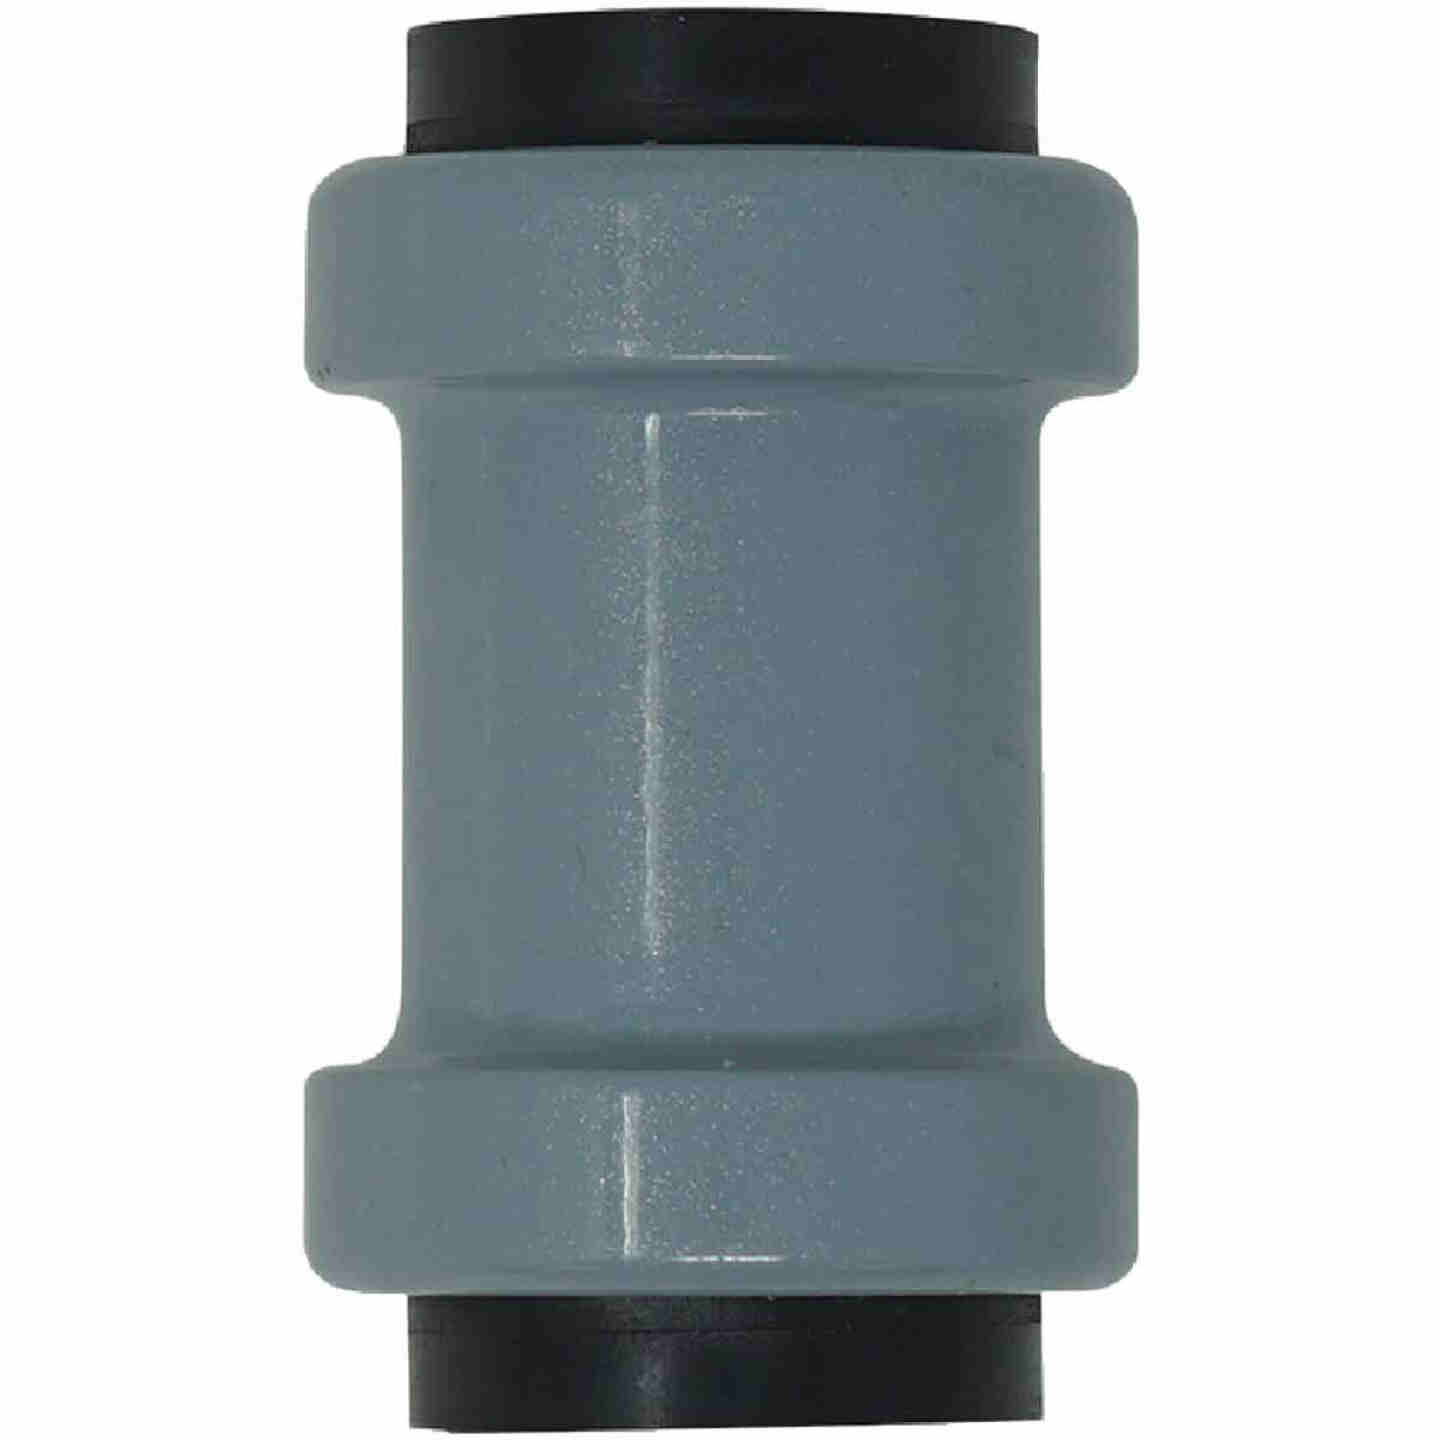 Southwire SimPush 3/4 In. EMT Push-To-Install Conduit Coupling (20-Pack) Image 1